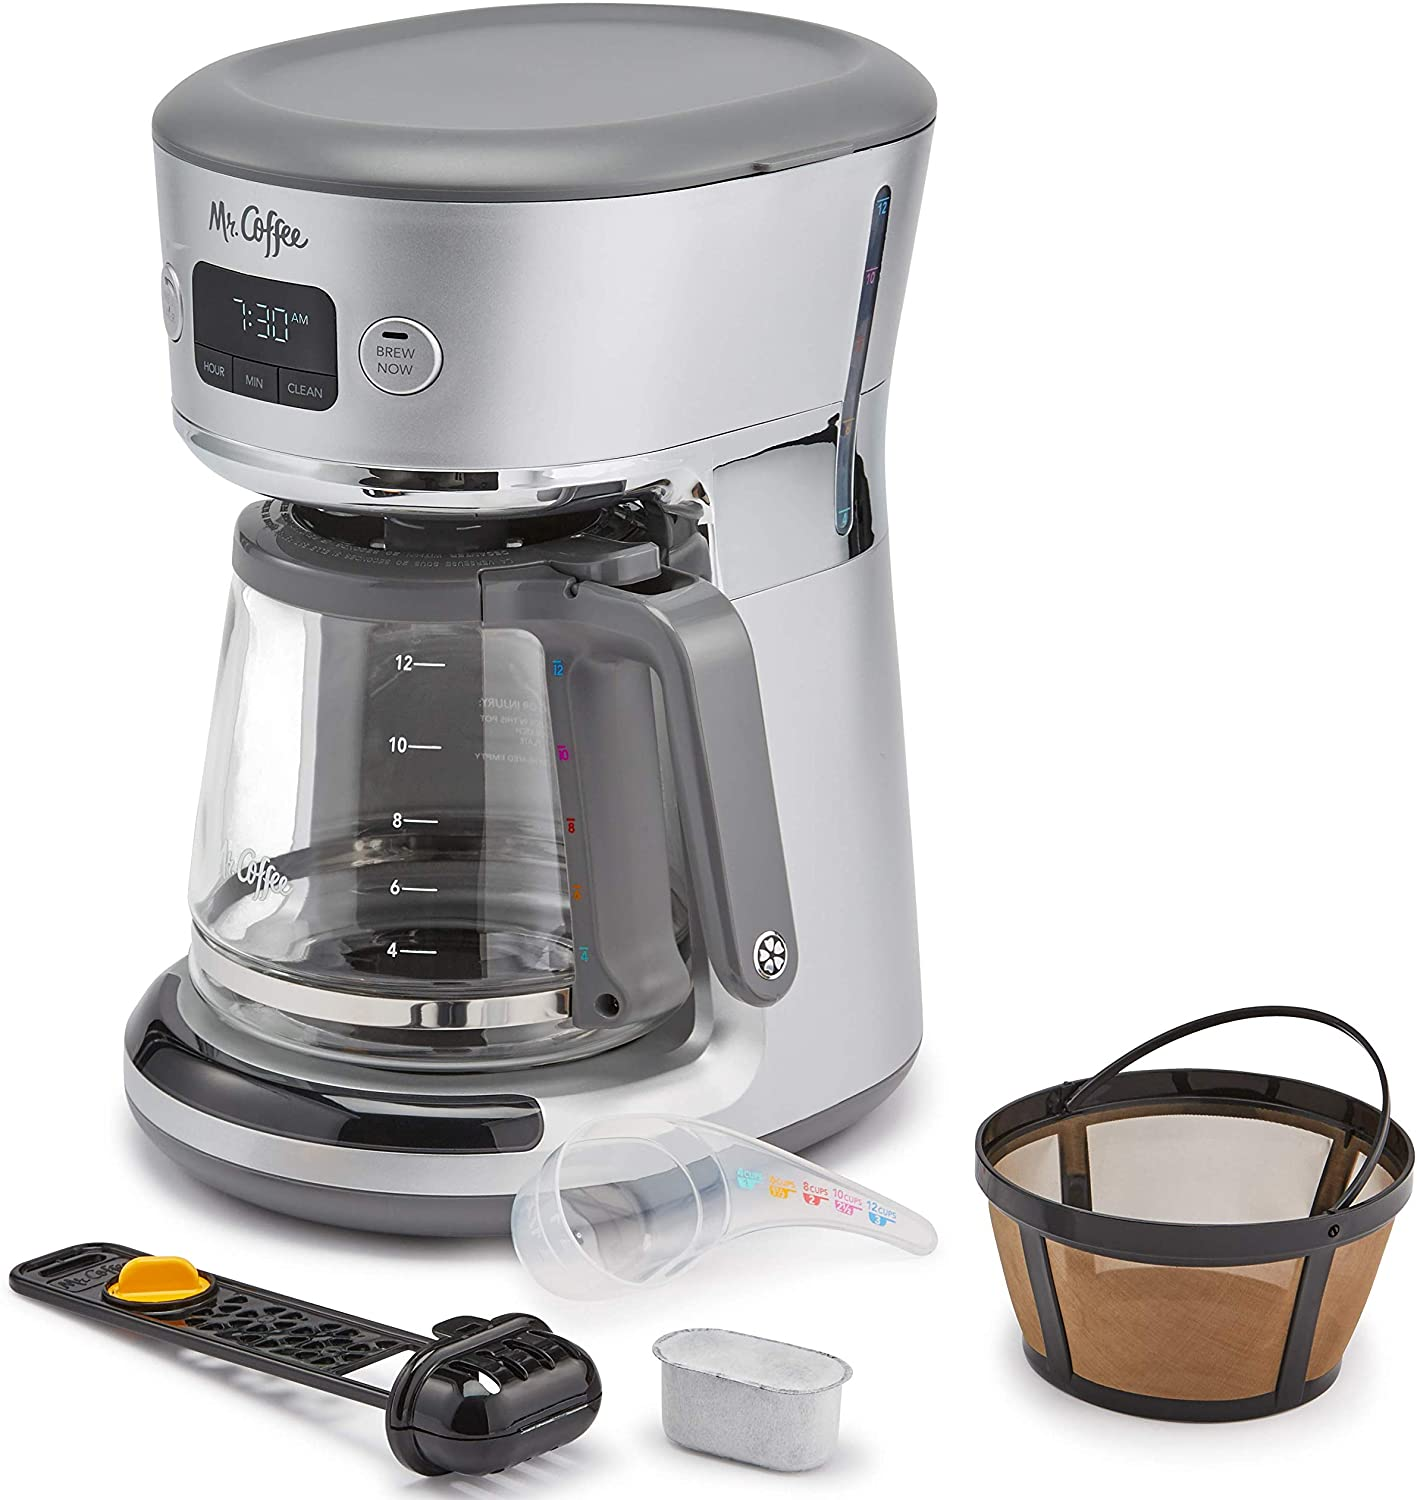 Mr Coffee 12-cup easy easure coffee maker